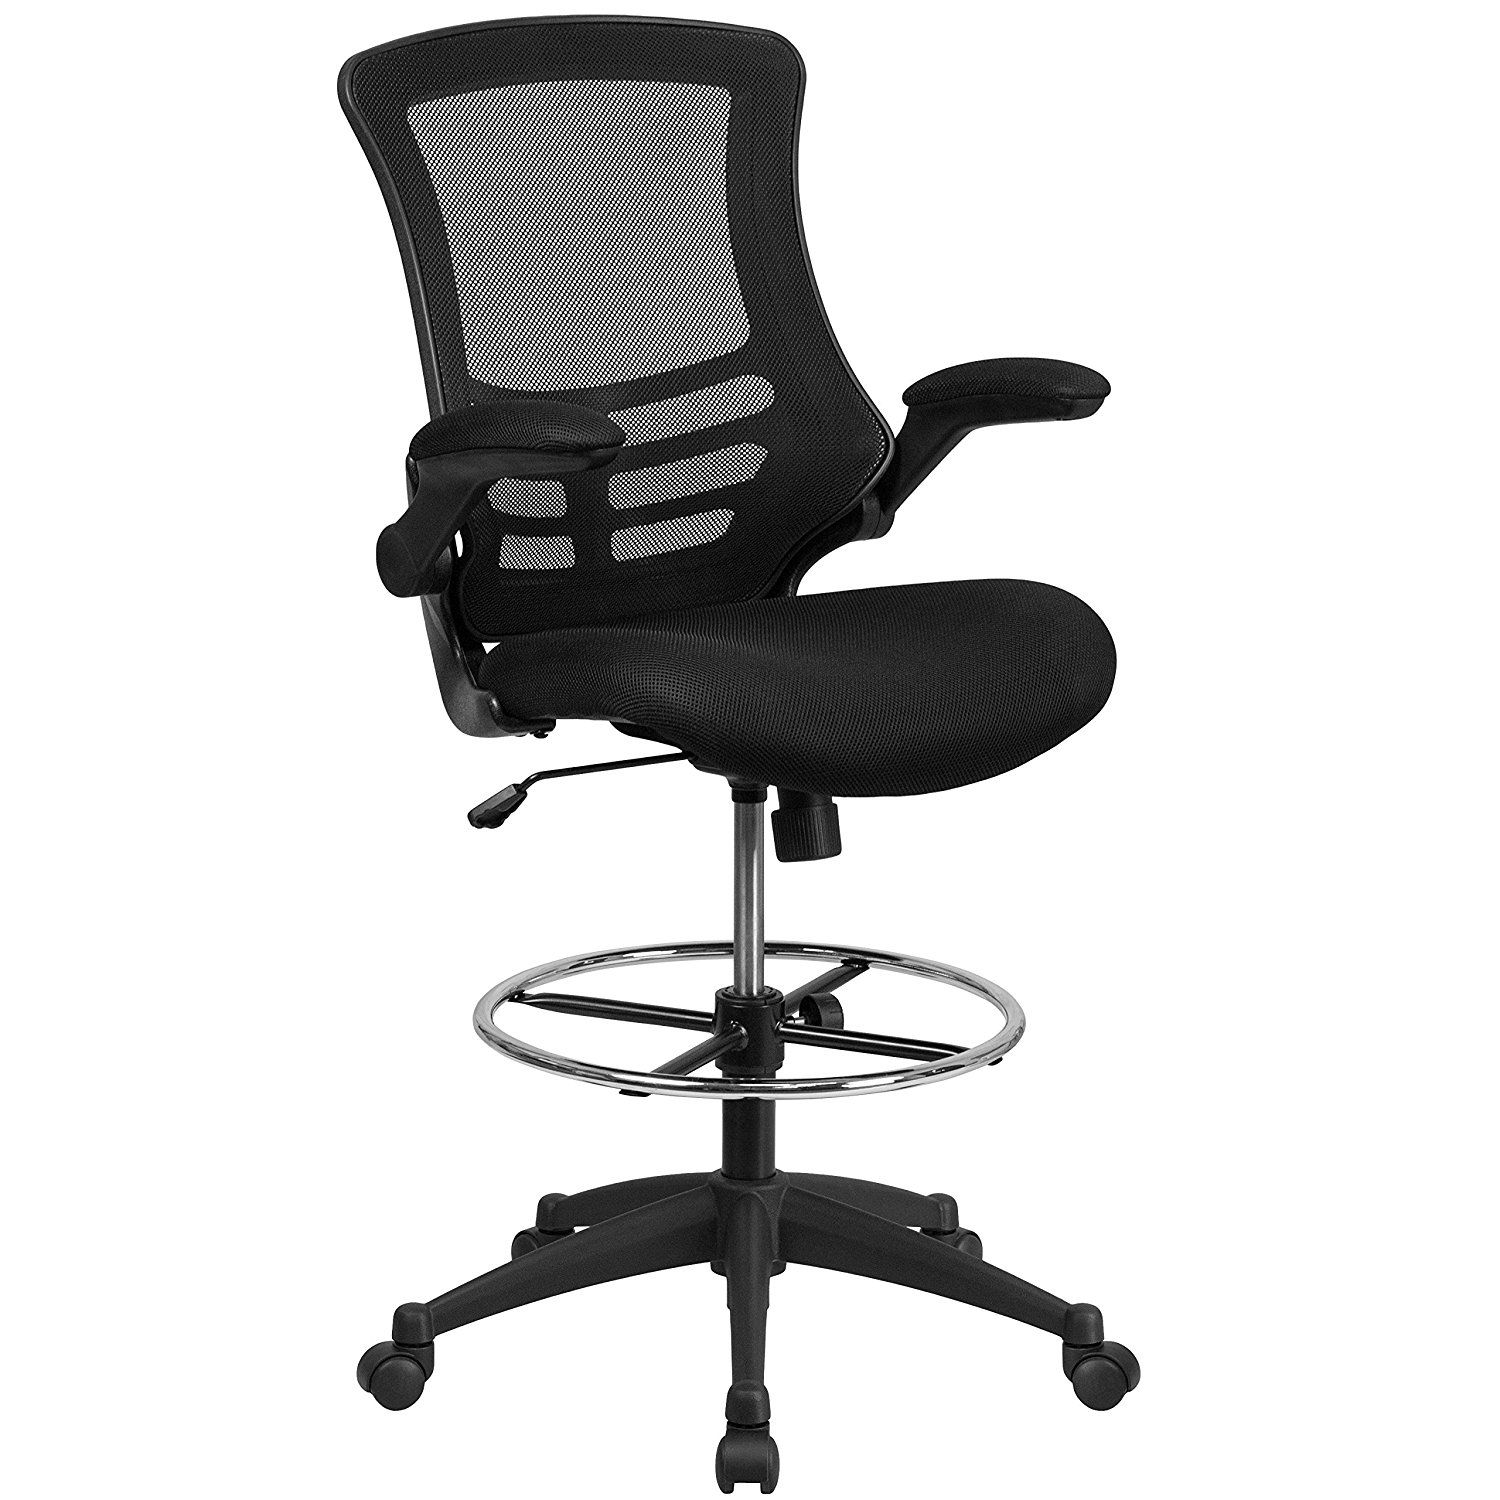 Rolling Chair Drafting Stool With Wheel Height Adjustable Foot Rest Swivel Black